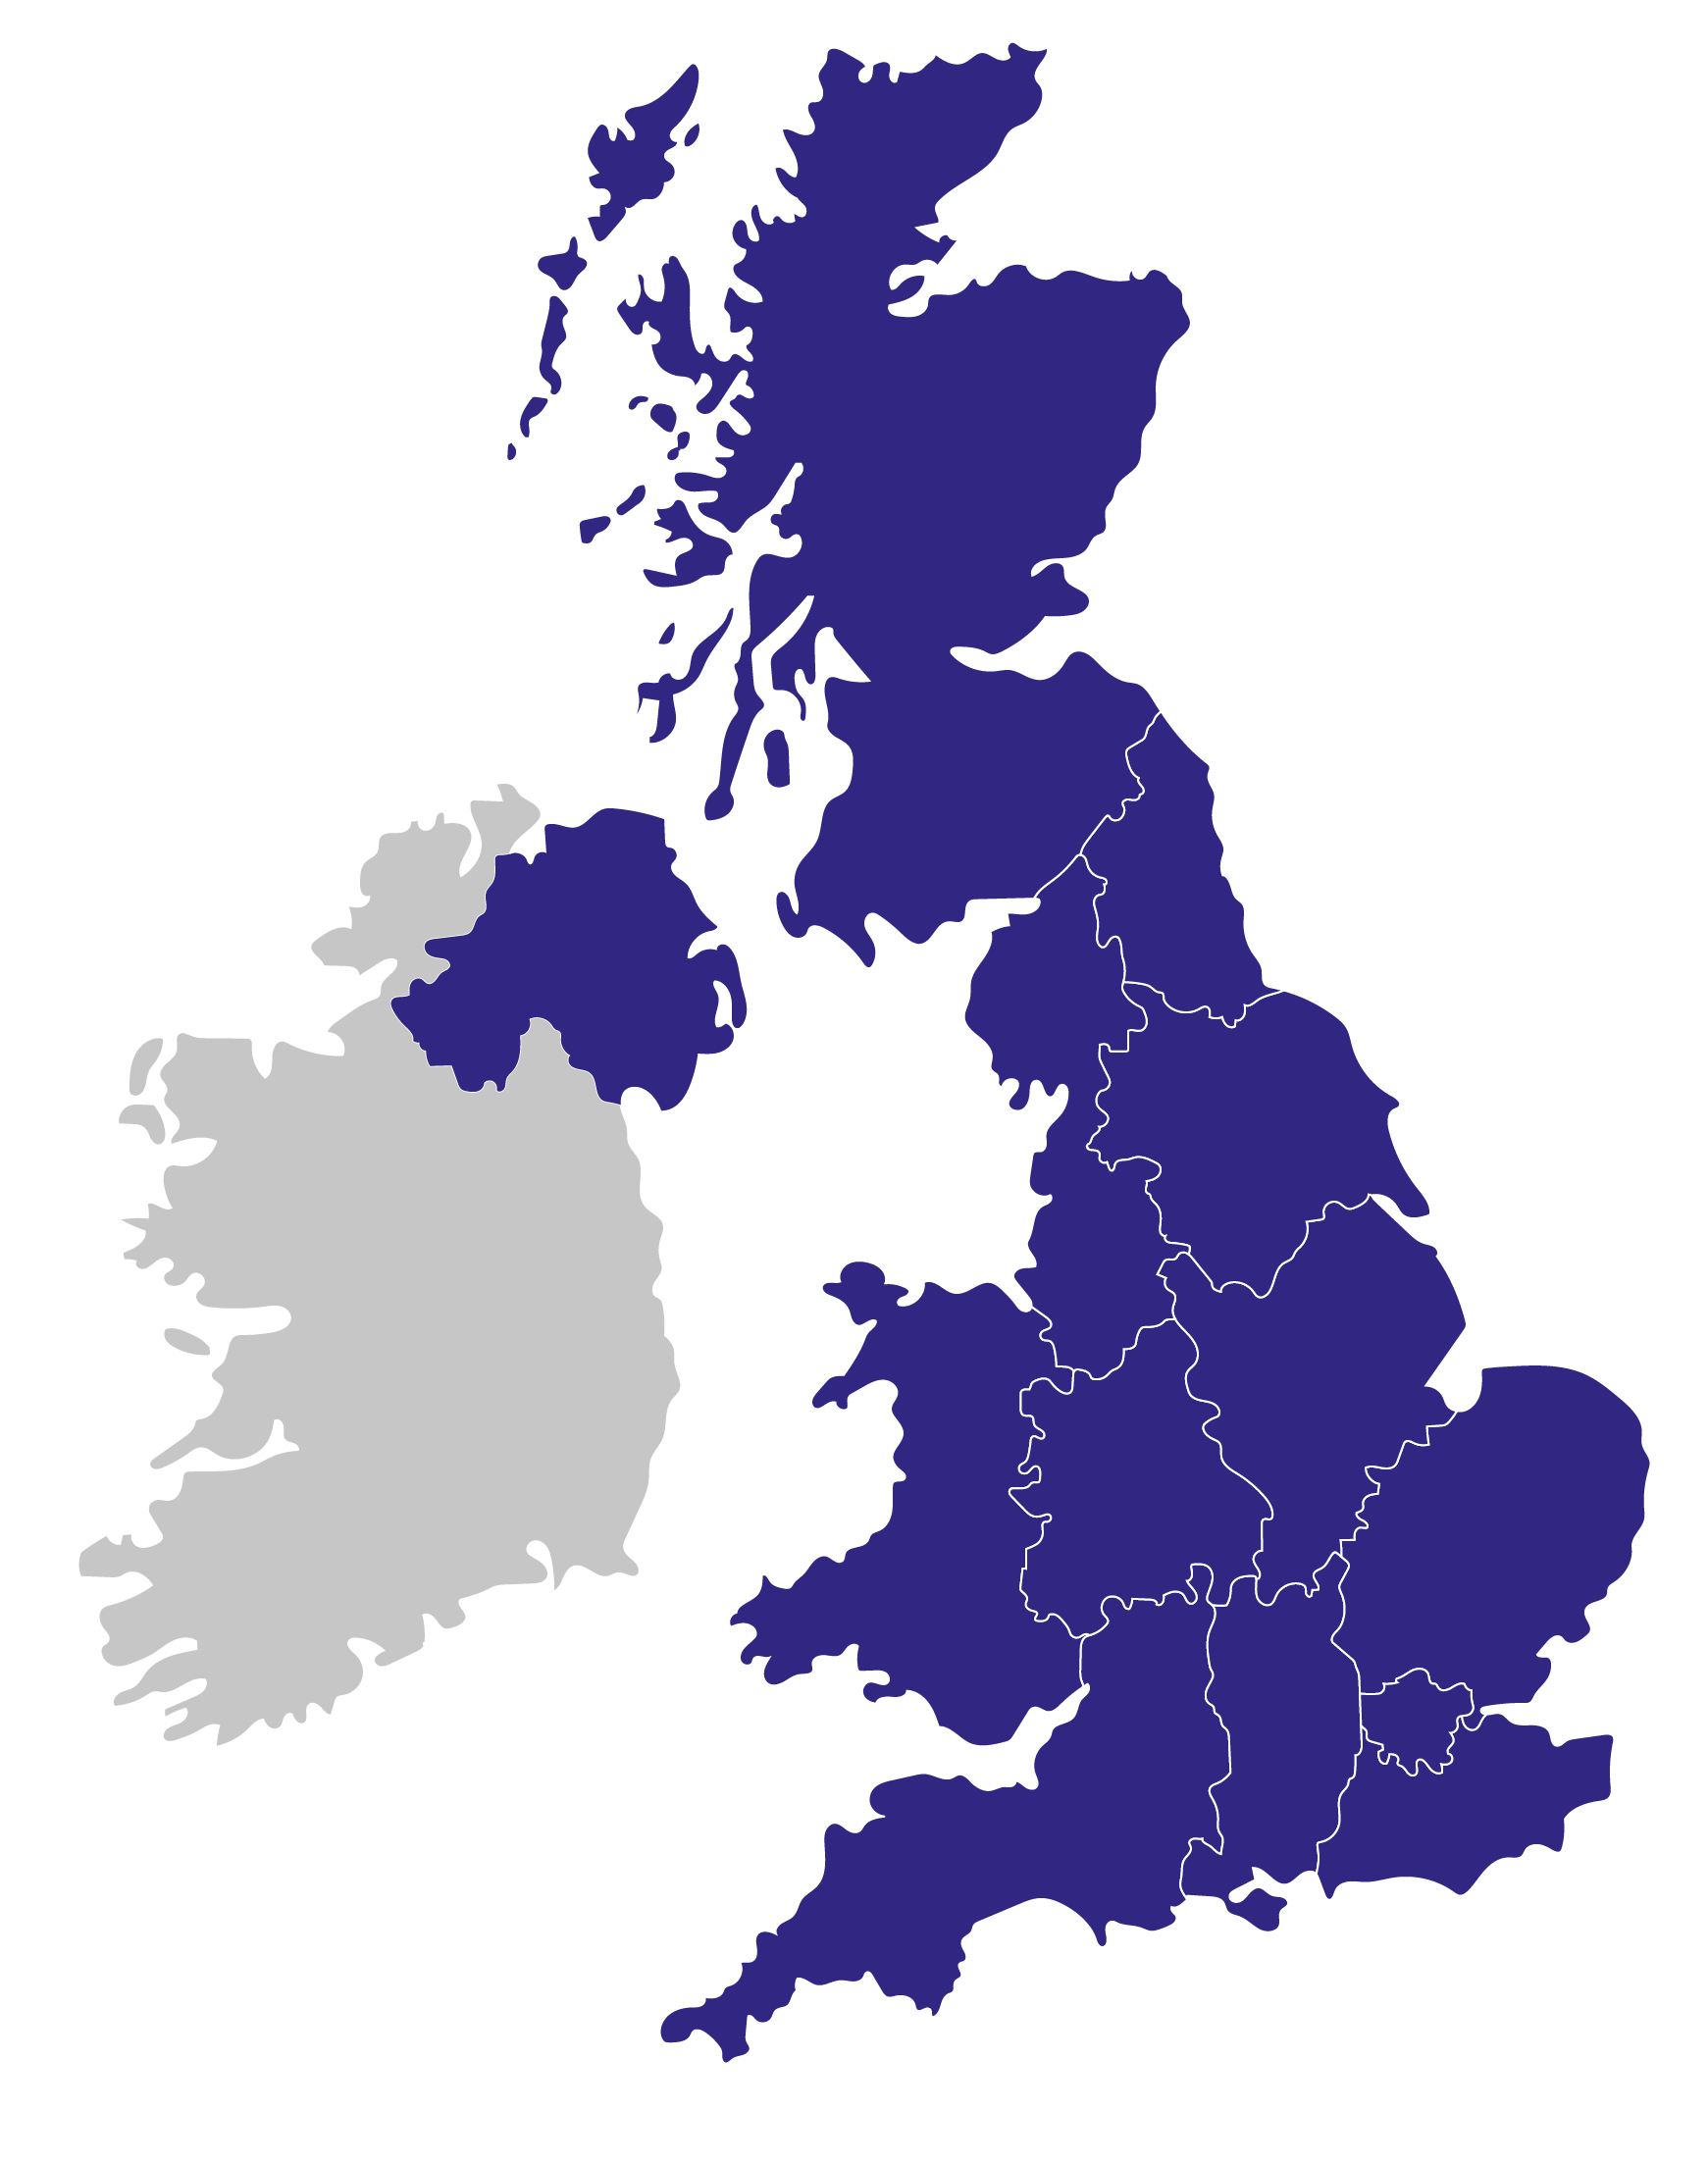 Map of the UK divided into regions